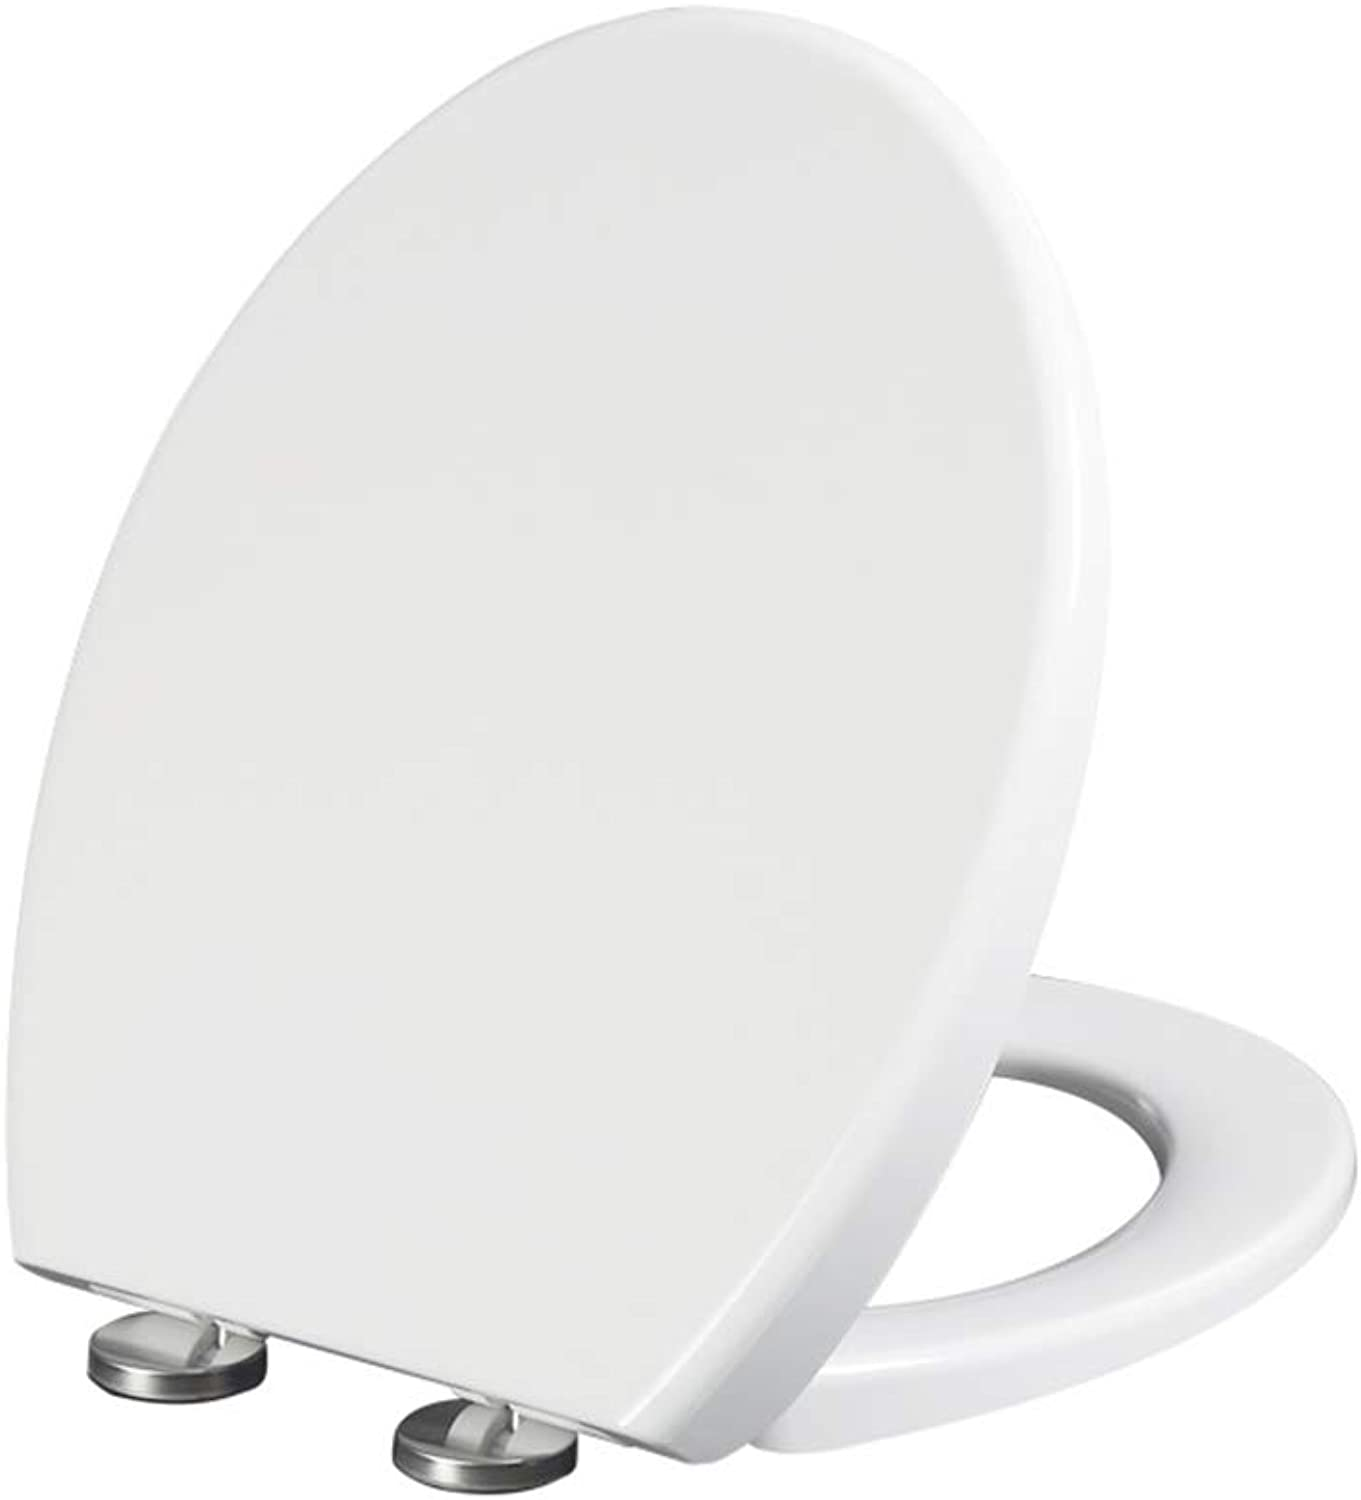 WC Toilet Seat with Slow Soft Close, Stable Hinges Easy to Mount Quick Release for Bathroom Antibacterial White,O,01B